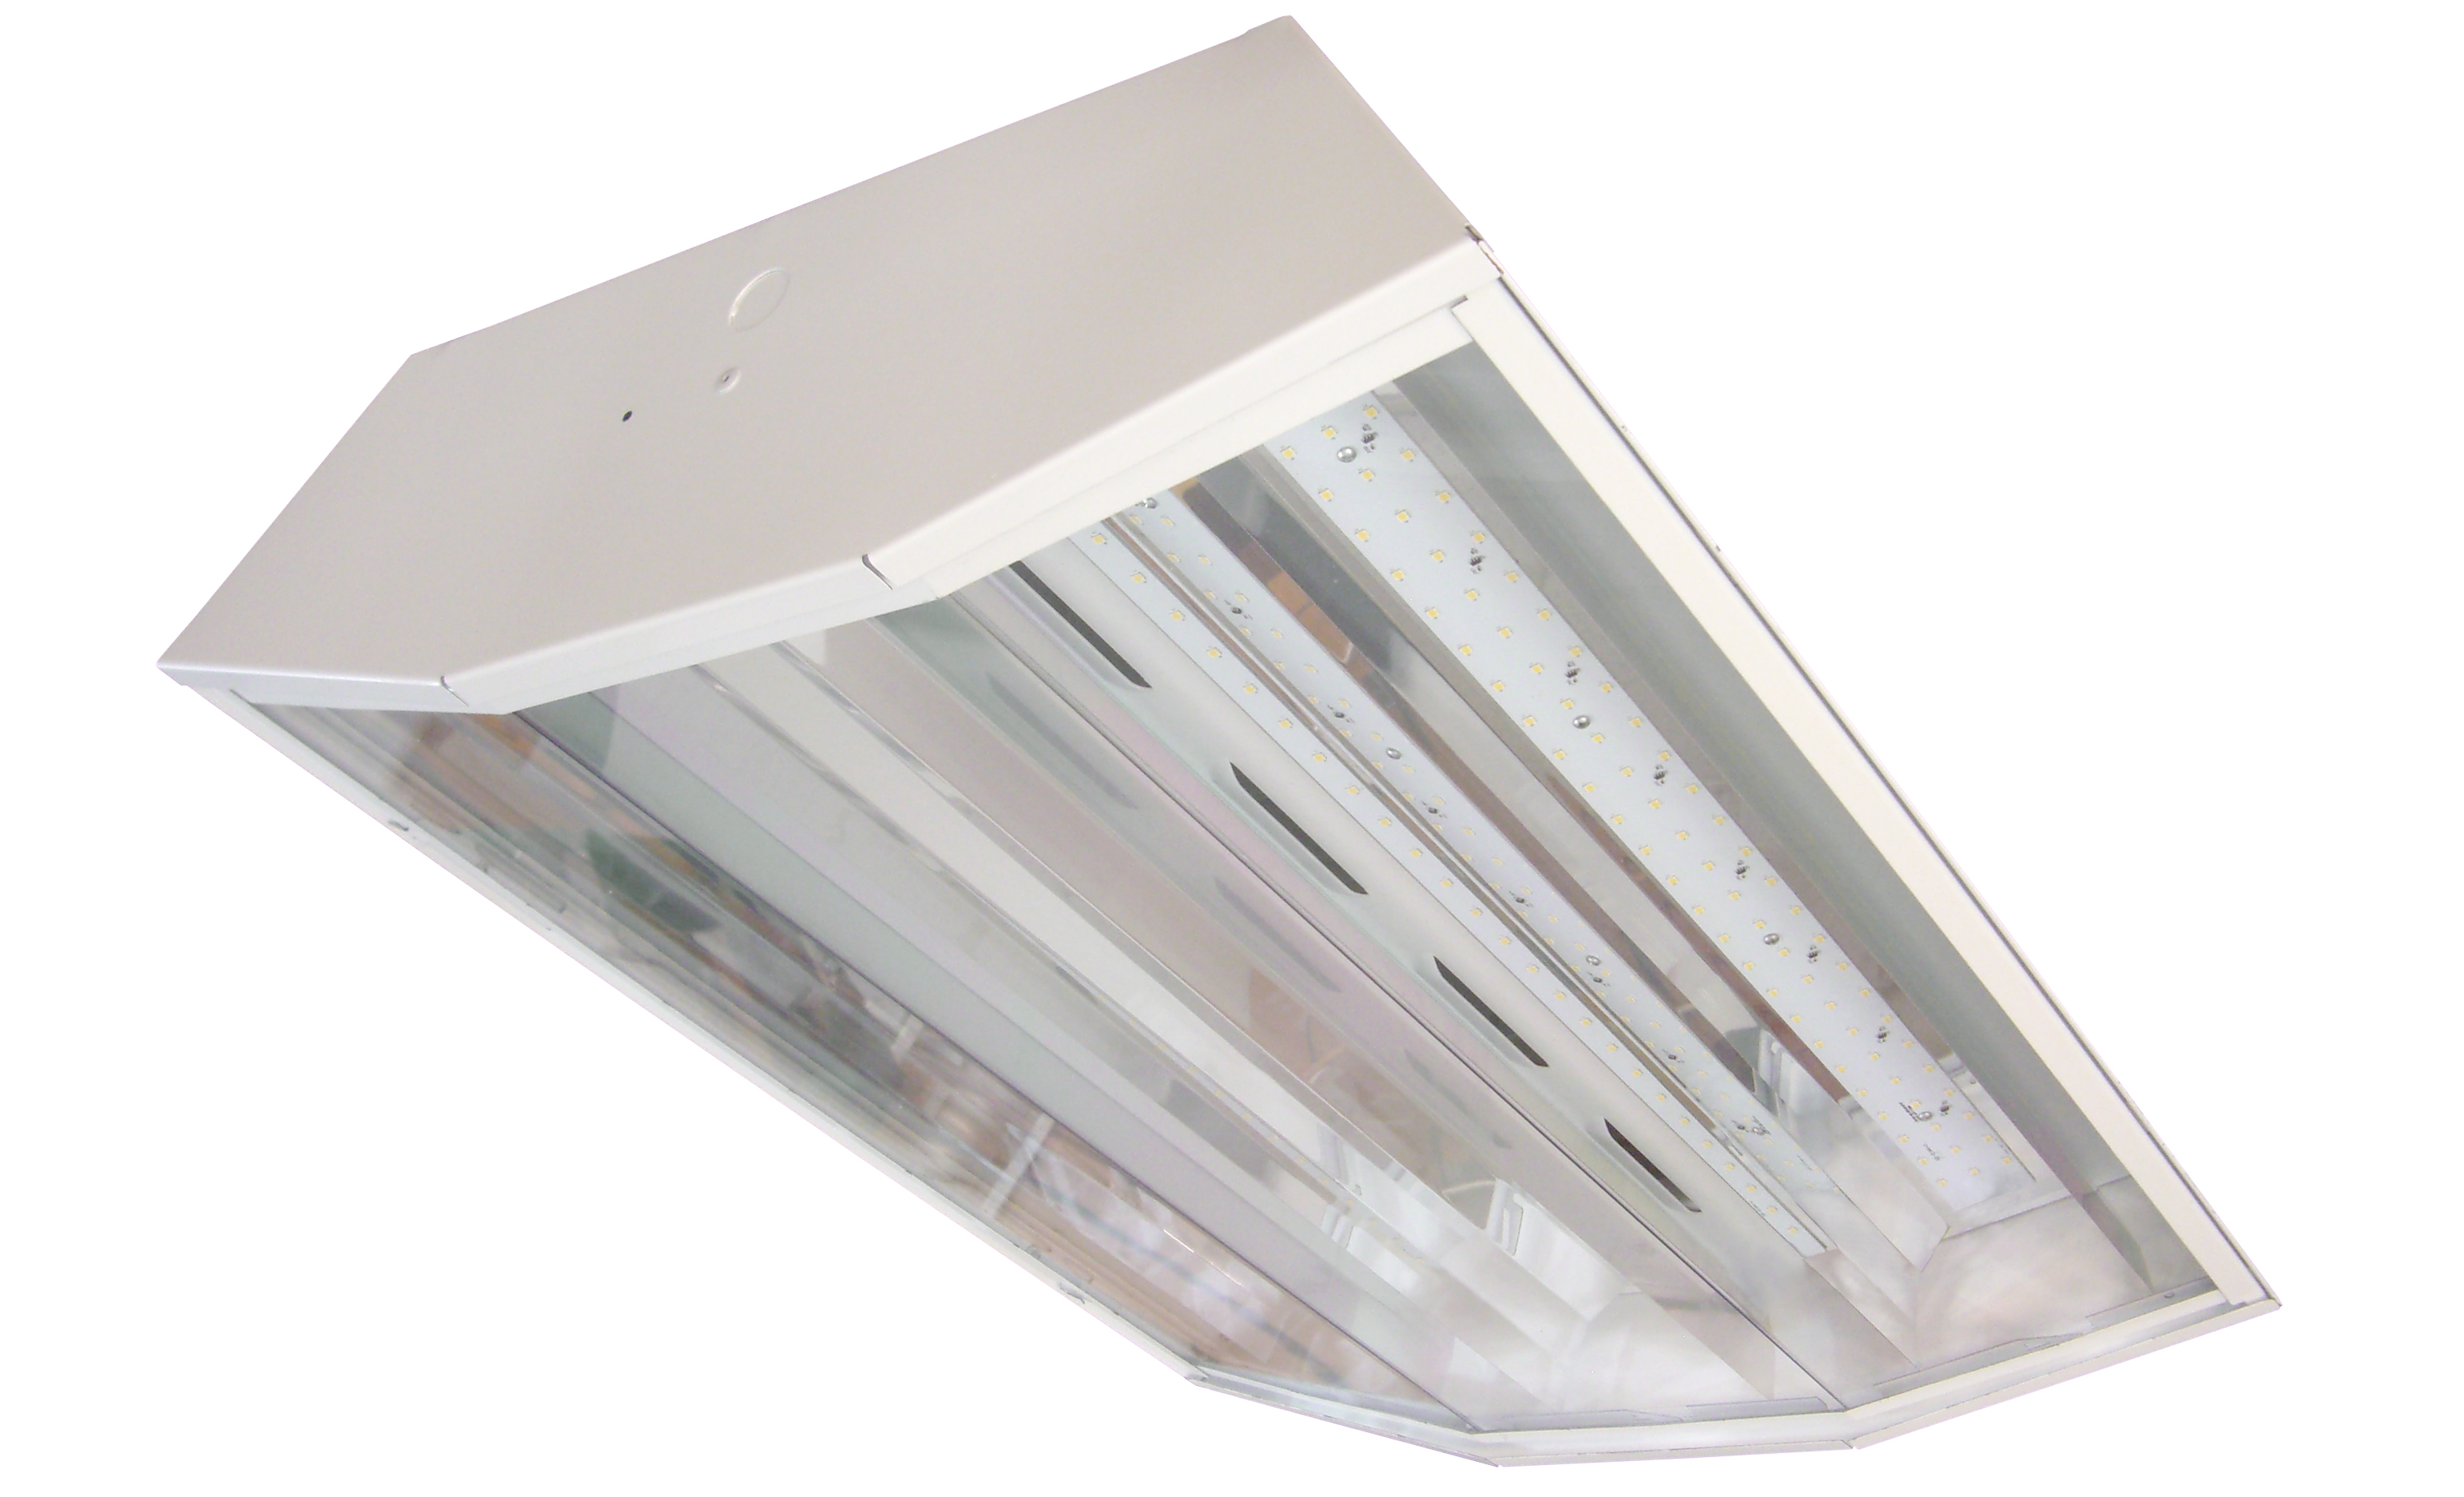 Luminaire Lighting Lamar Lighting Introduces First High Bay Luminaire Commercial